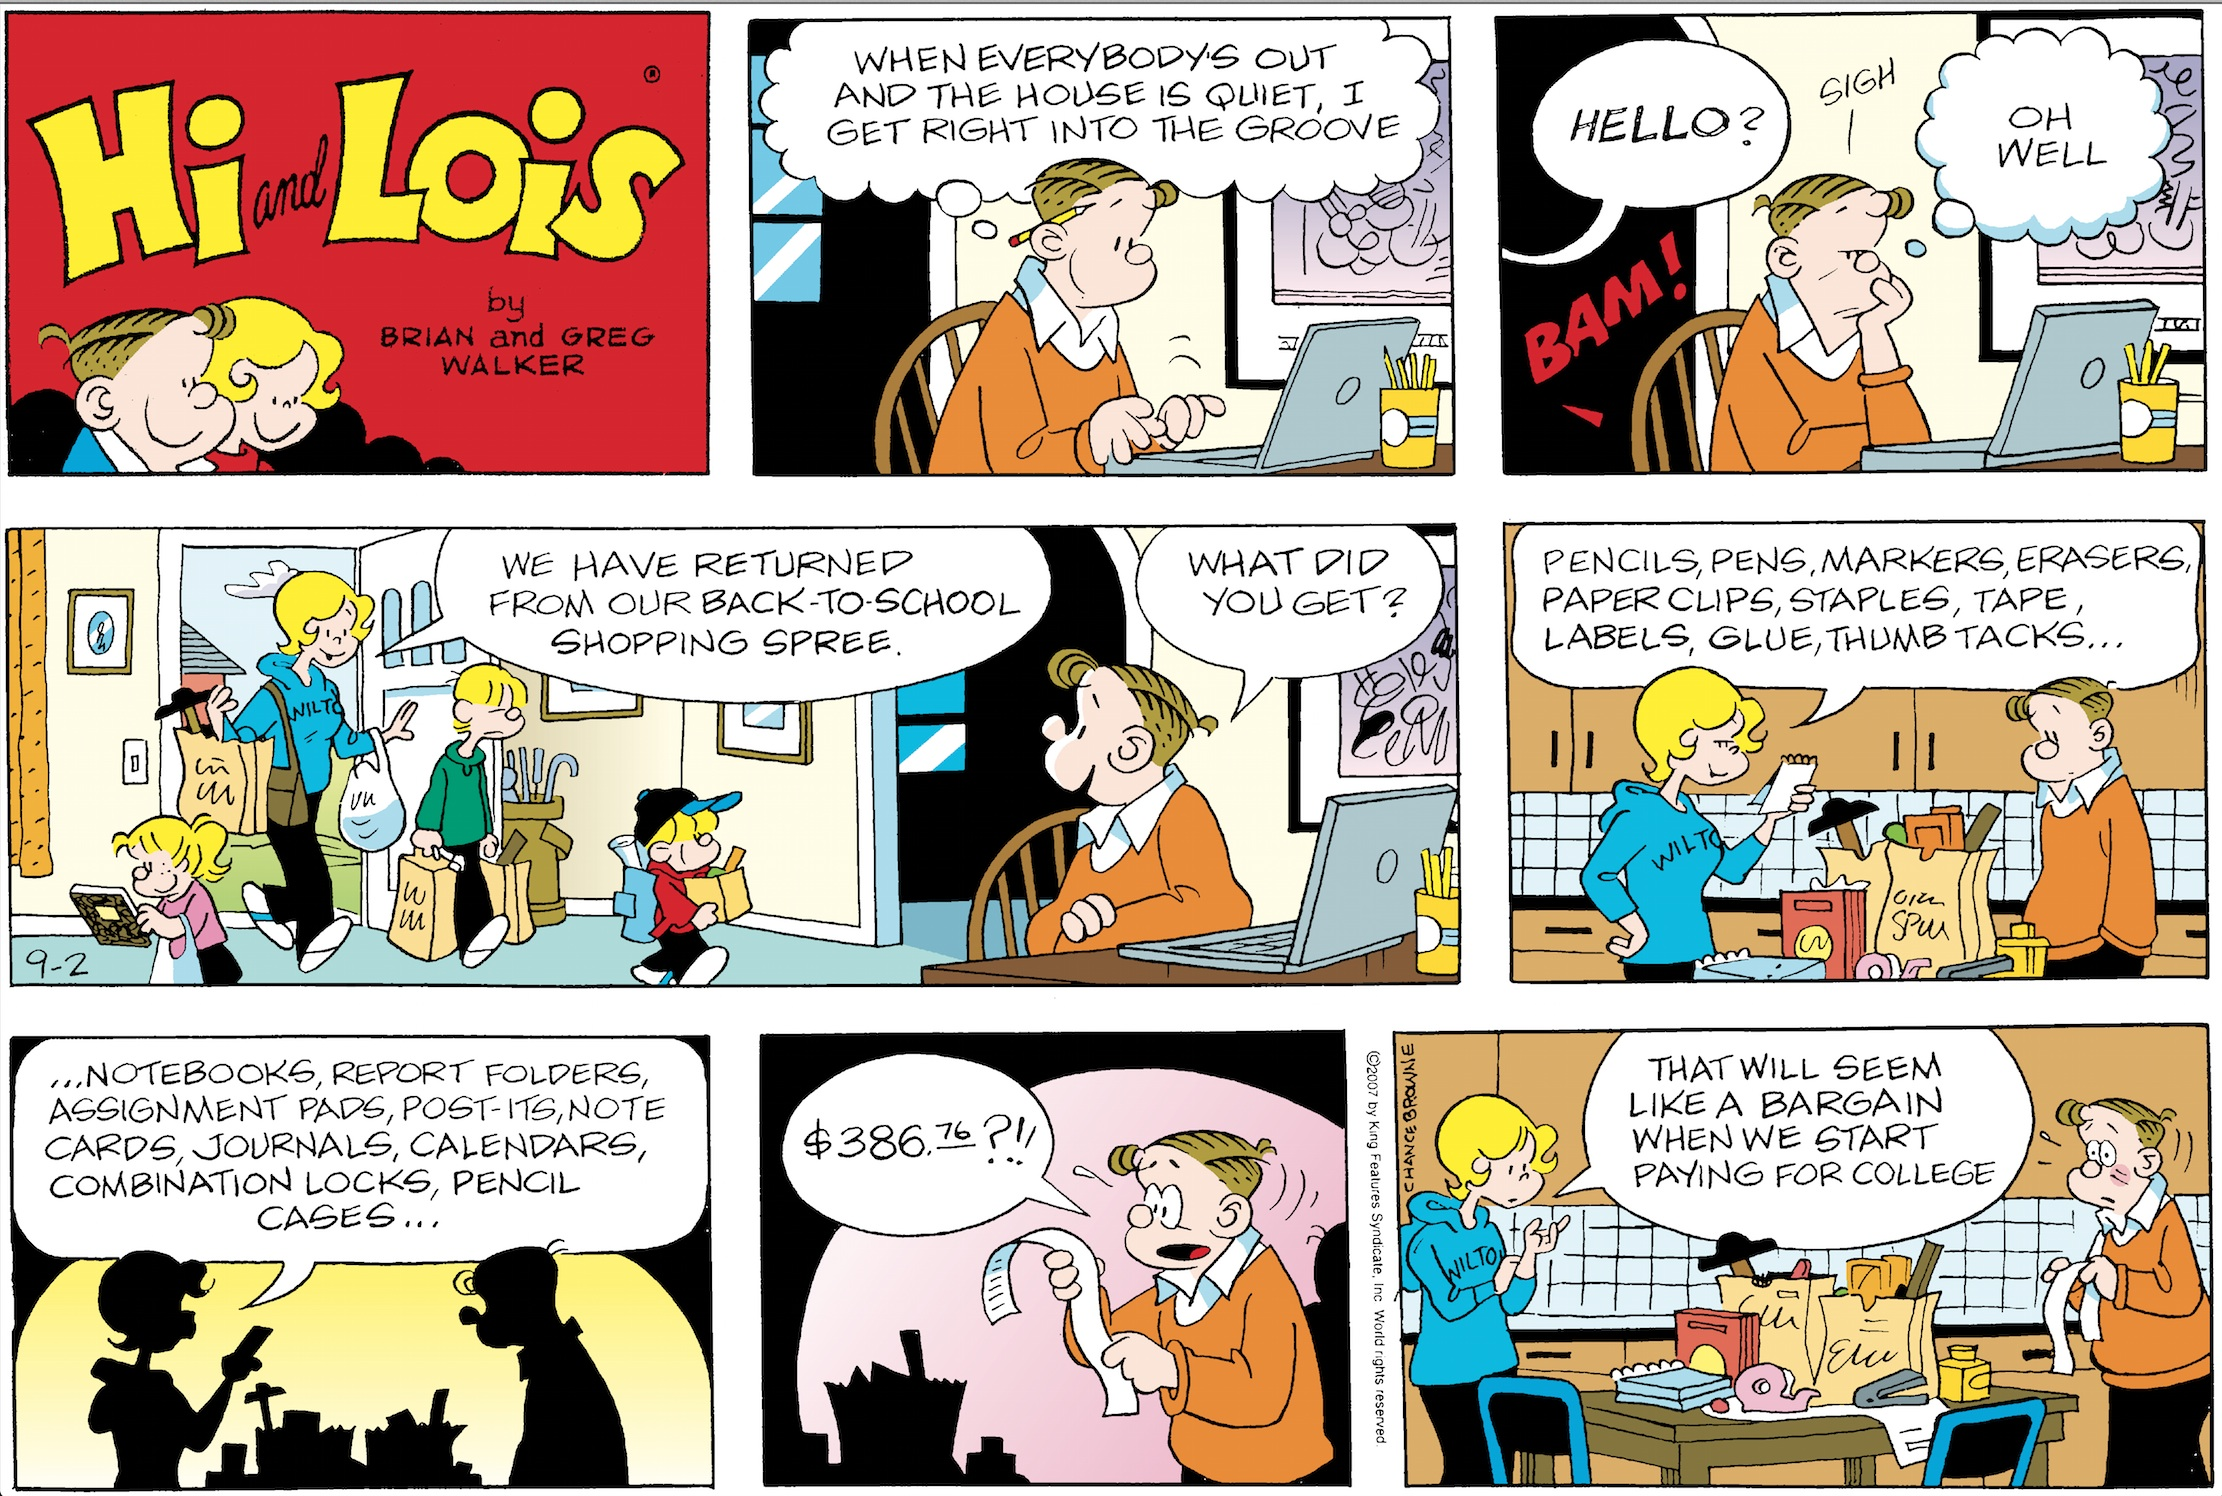 Hi and Lois Sunday page, September 2, 2007.